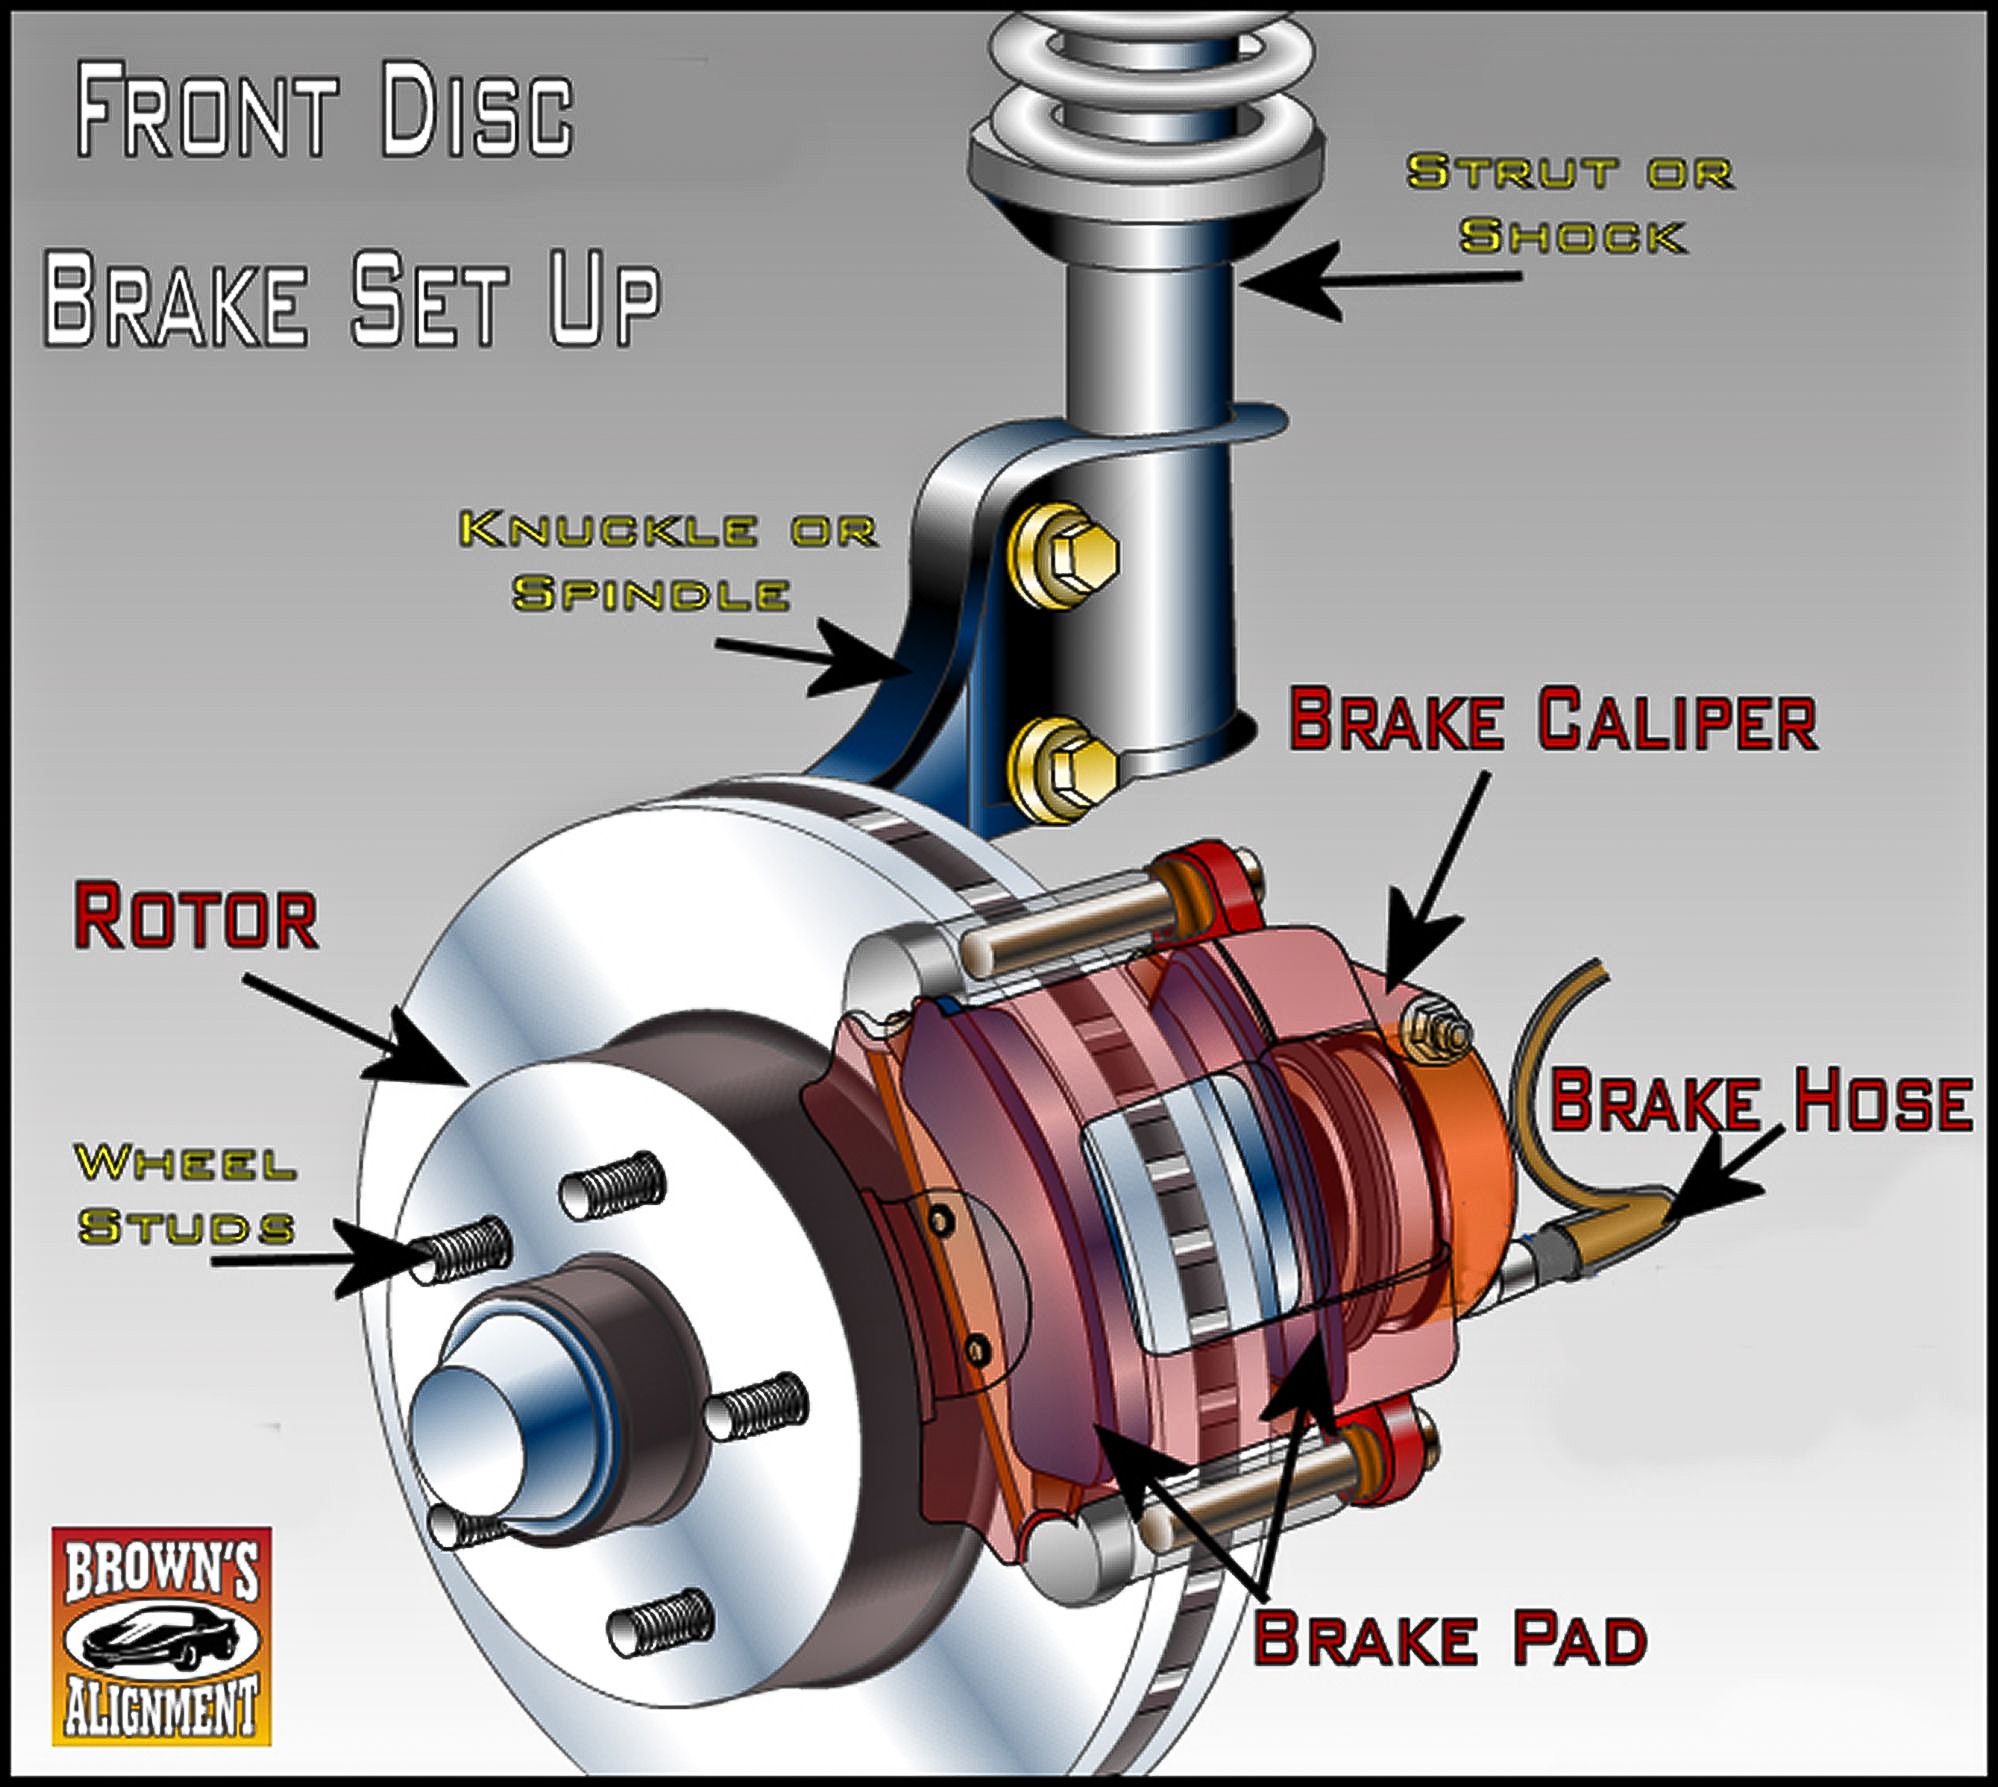 What Parts Are Replaced During A Disc Brake Job Manual Guide